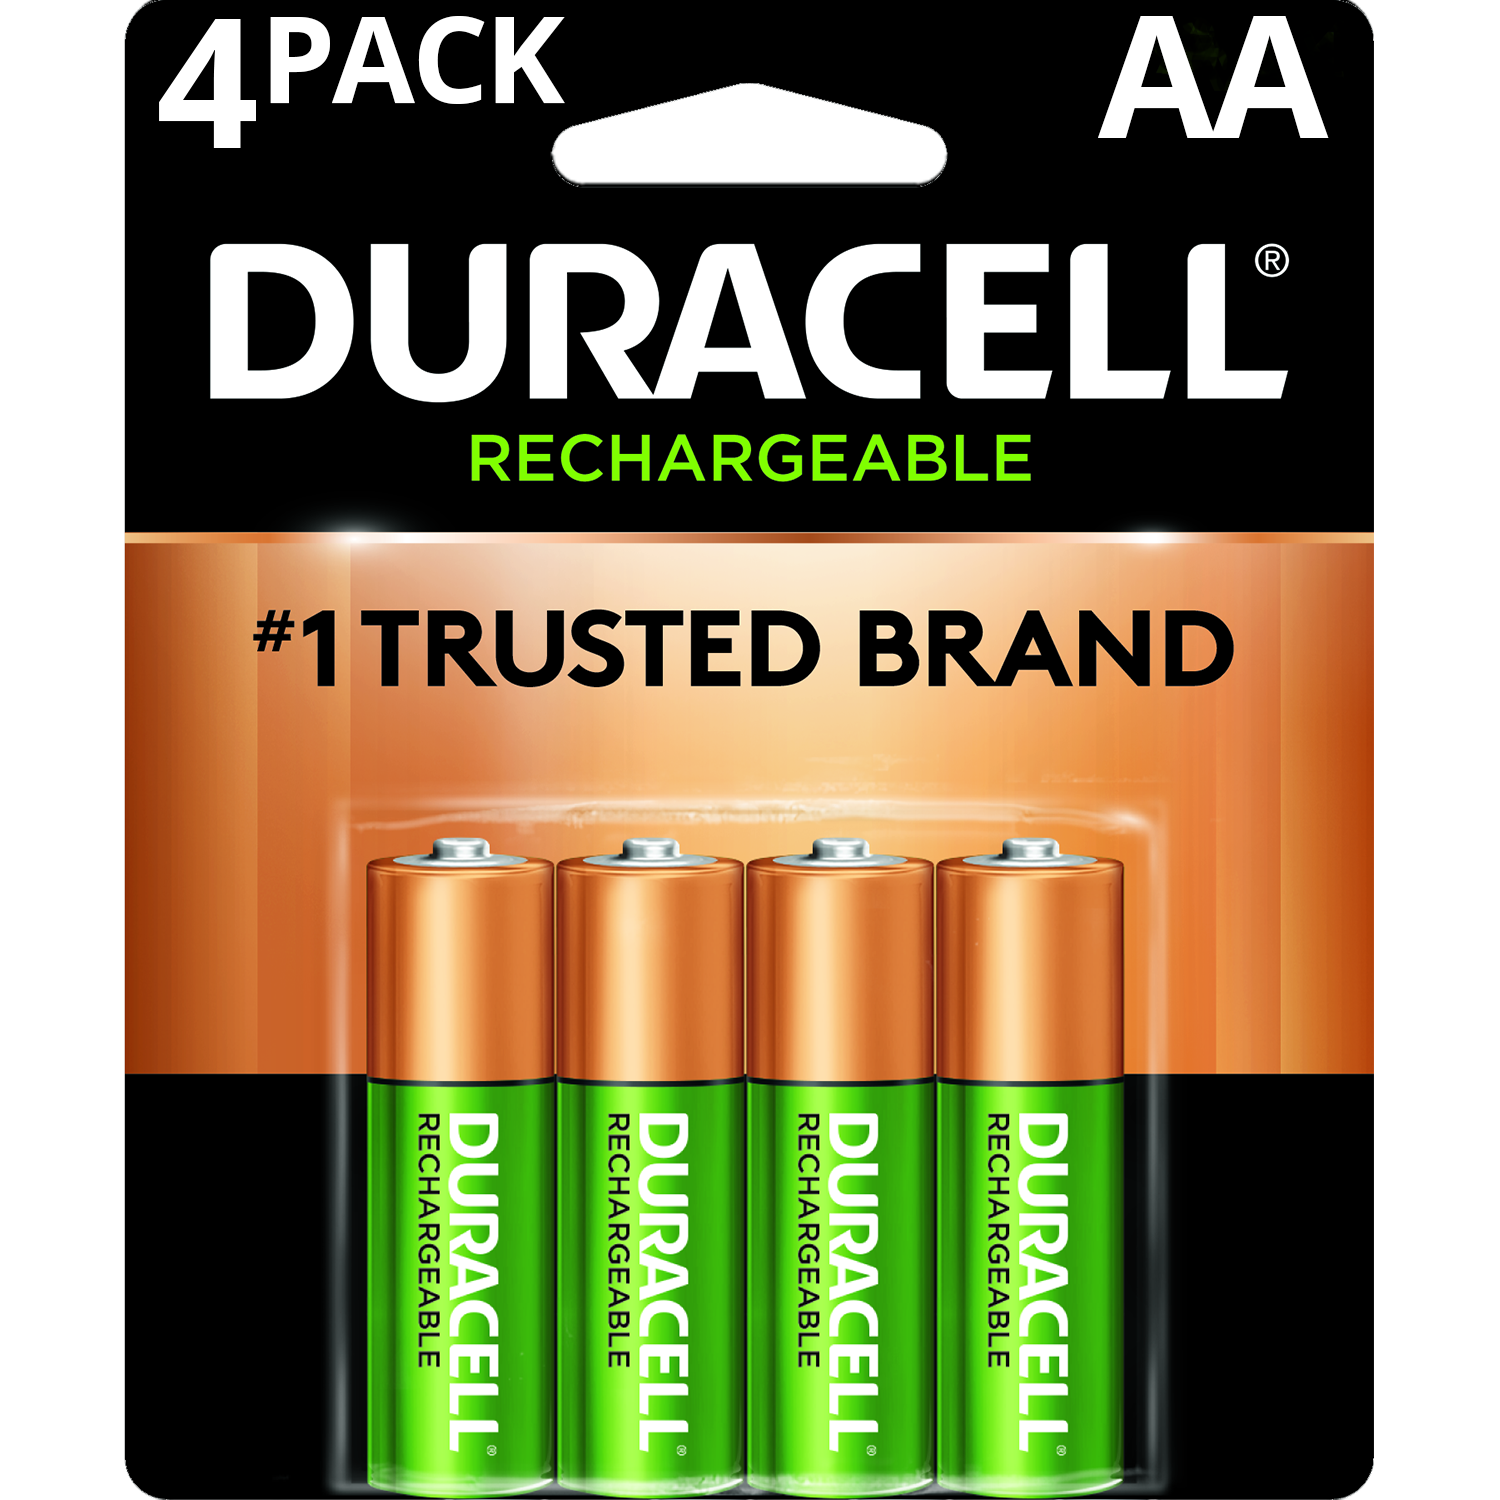 Duracell 1.5V Rechargeable Alkaline AA Batteries, 4 Pack